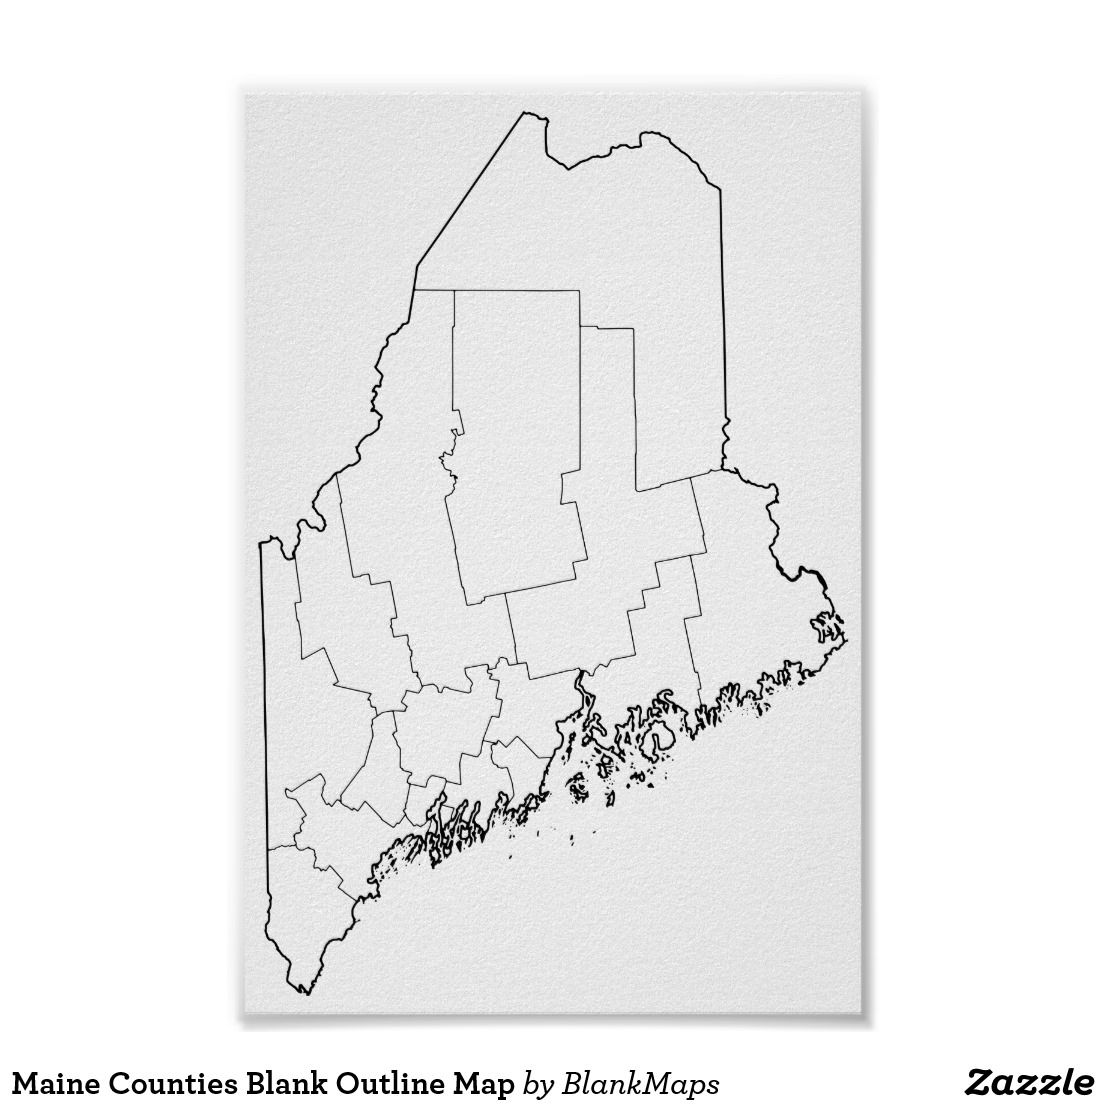 Maine Counties Blank Outline Map Blank Outline Maps Outline Map